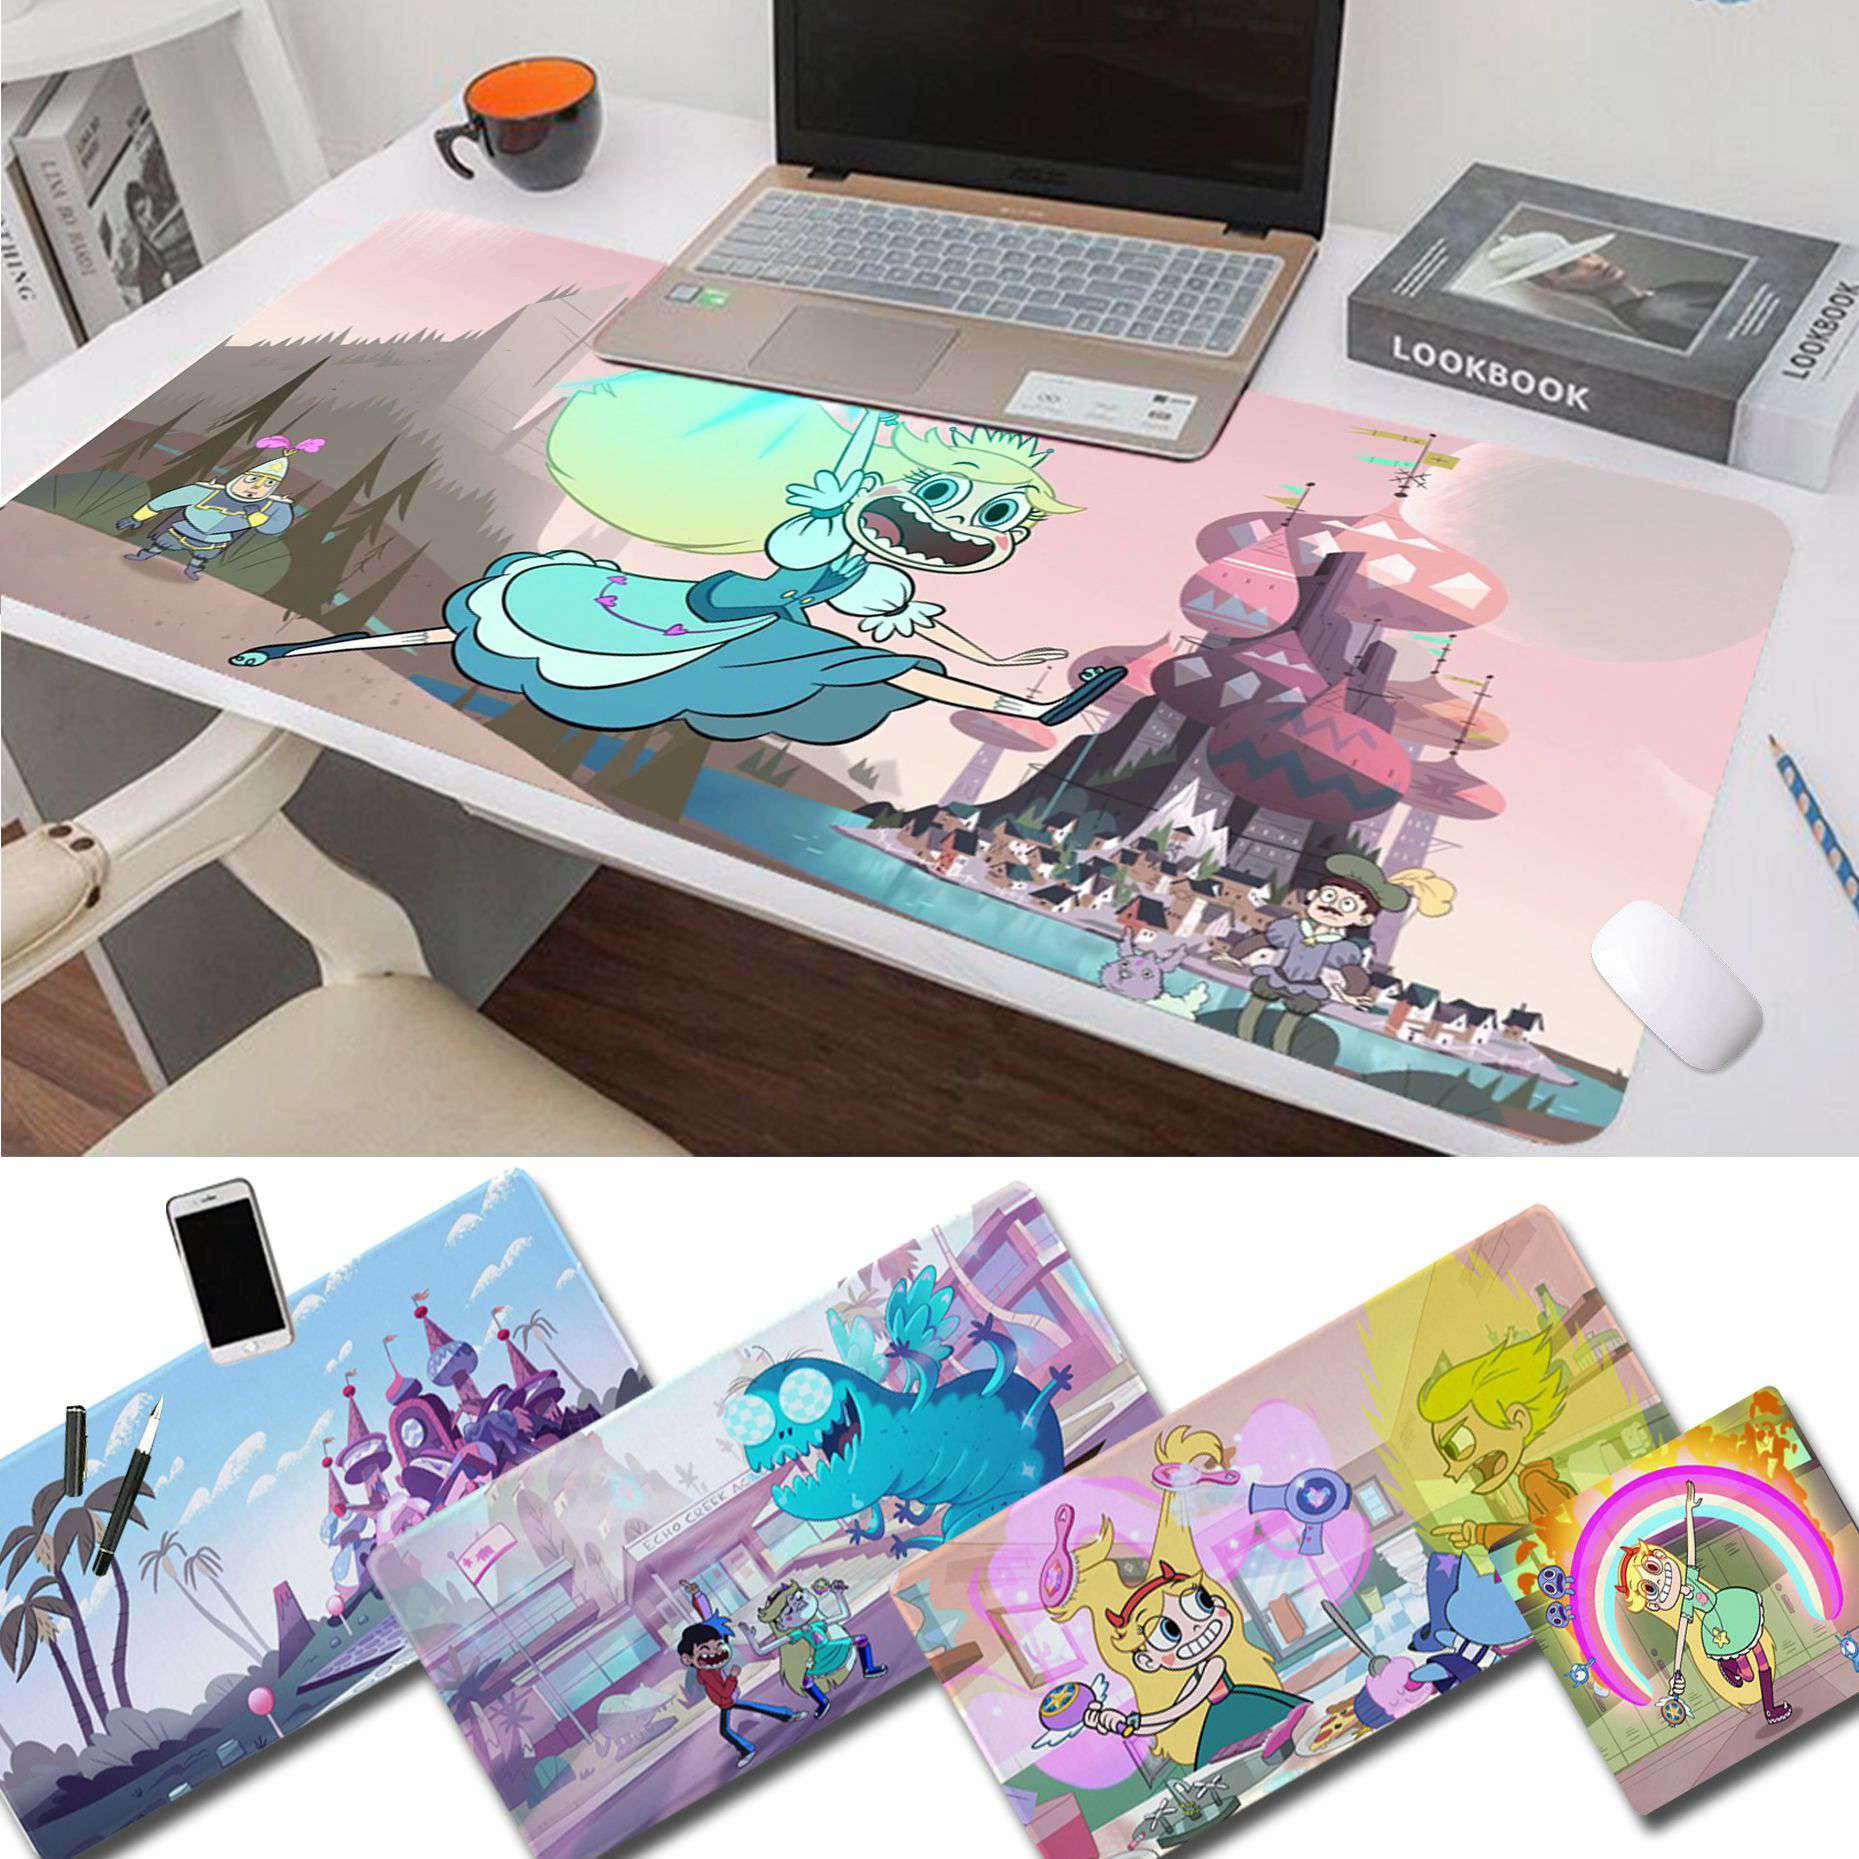 Maiya Anime Star Vs The Forces Of Evil Gamer Speed Mice Retail Small Rubber Mousepad Free Shipping Large Mouse Pad Keyboards Mat